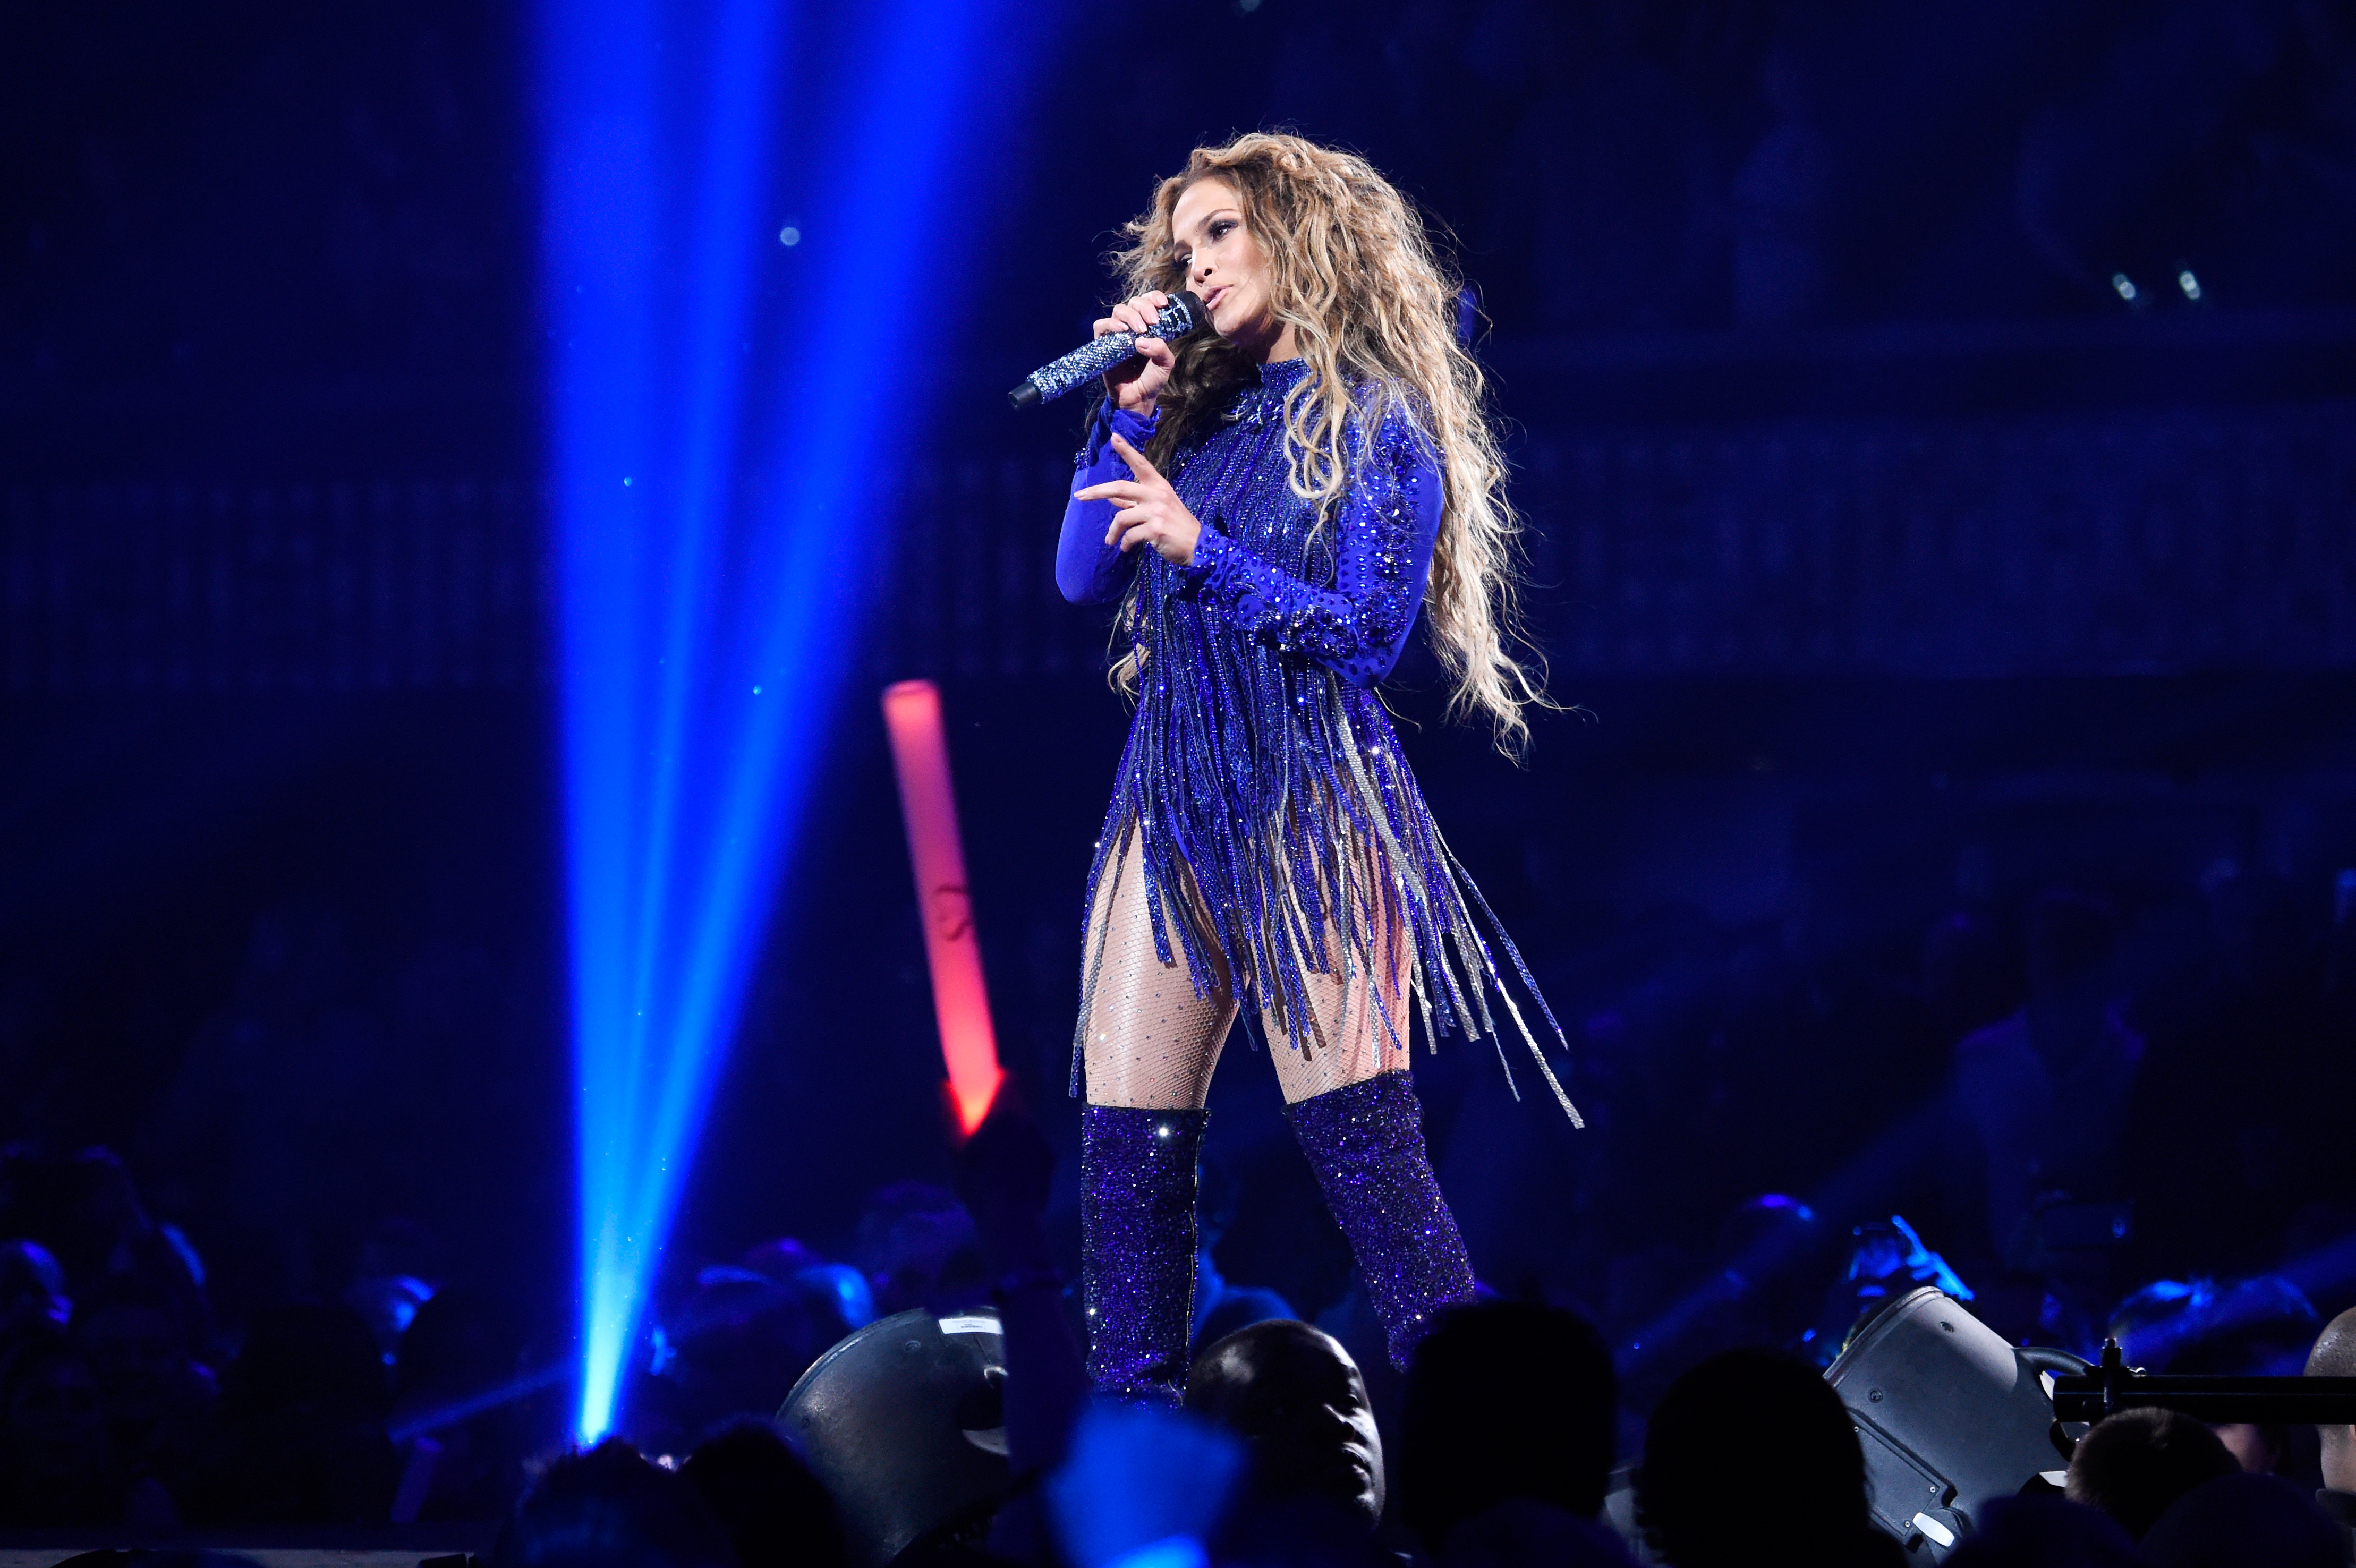 Jennifer Lopez performs onstage during the 2018 DIRECTV NOW Super Saturday Night Concert at NOMADIC LIVE! at The Armory on Feb. 3, 2018 in Minneapolis, Minnesota.